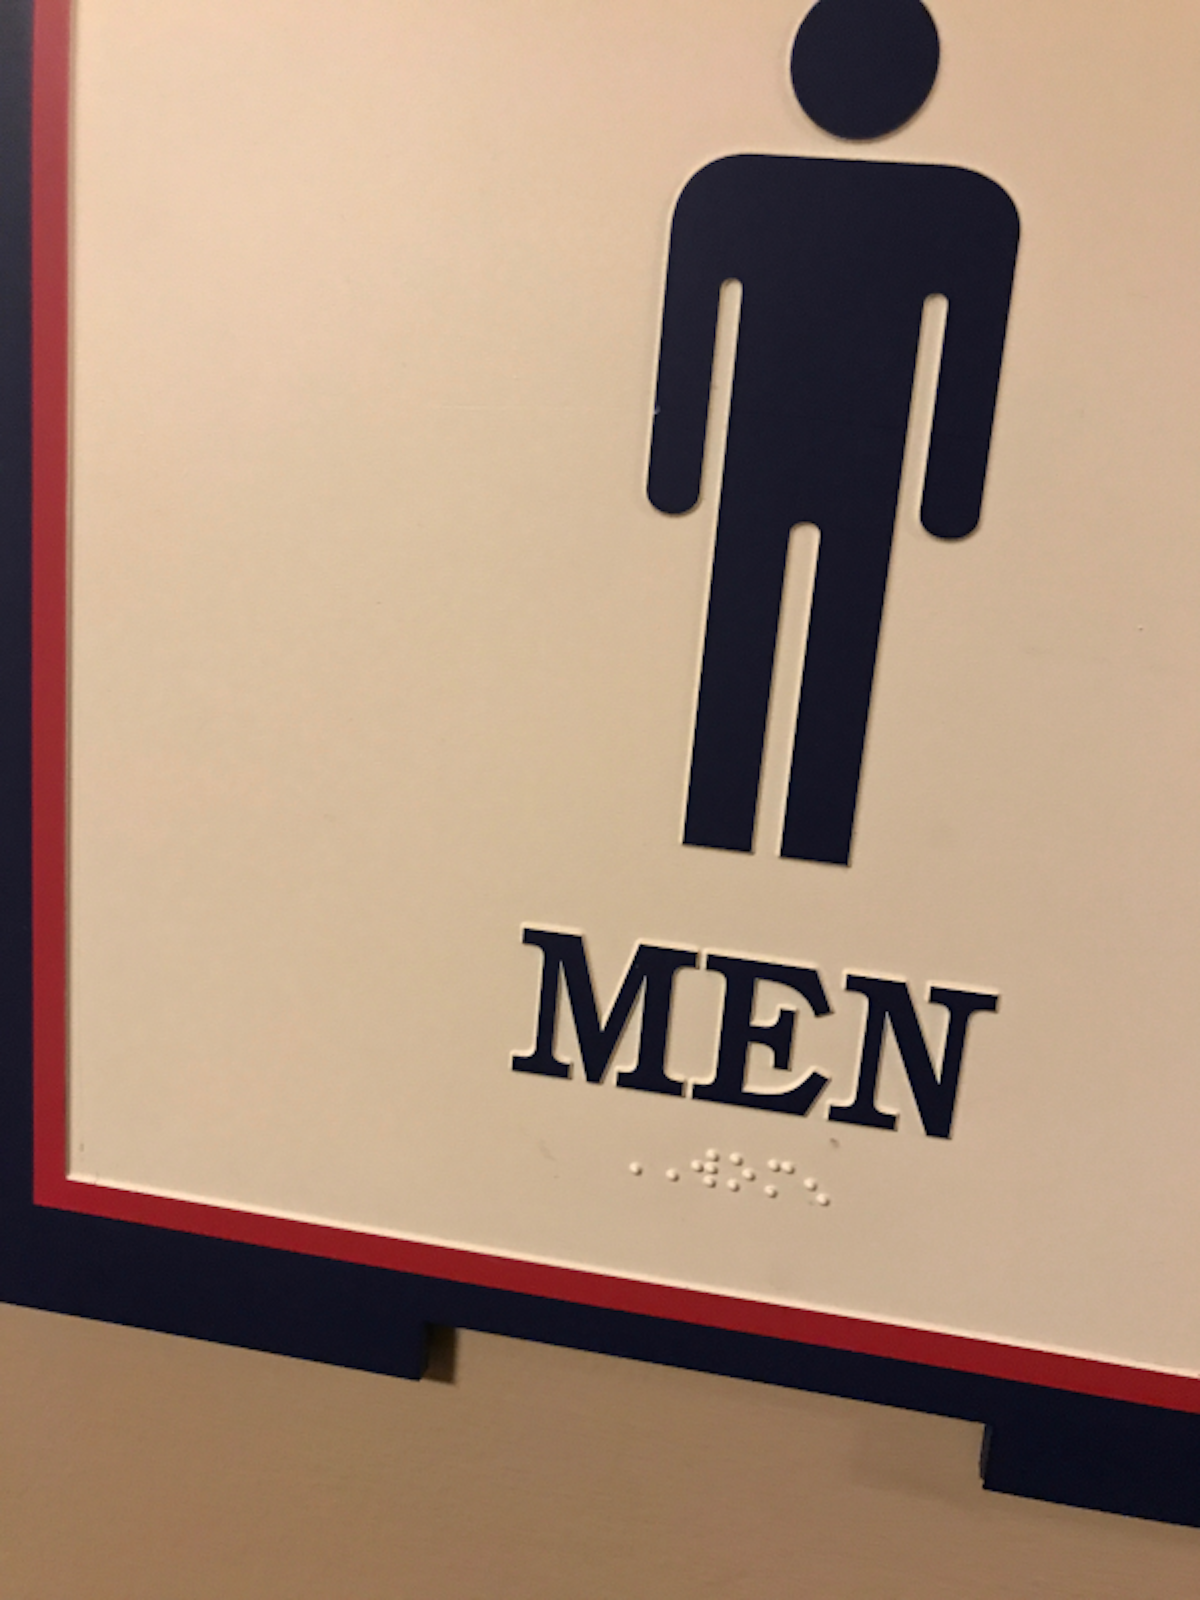 Men's restroom sign with Women in braille